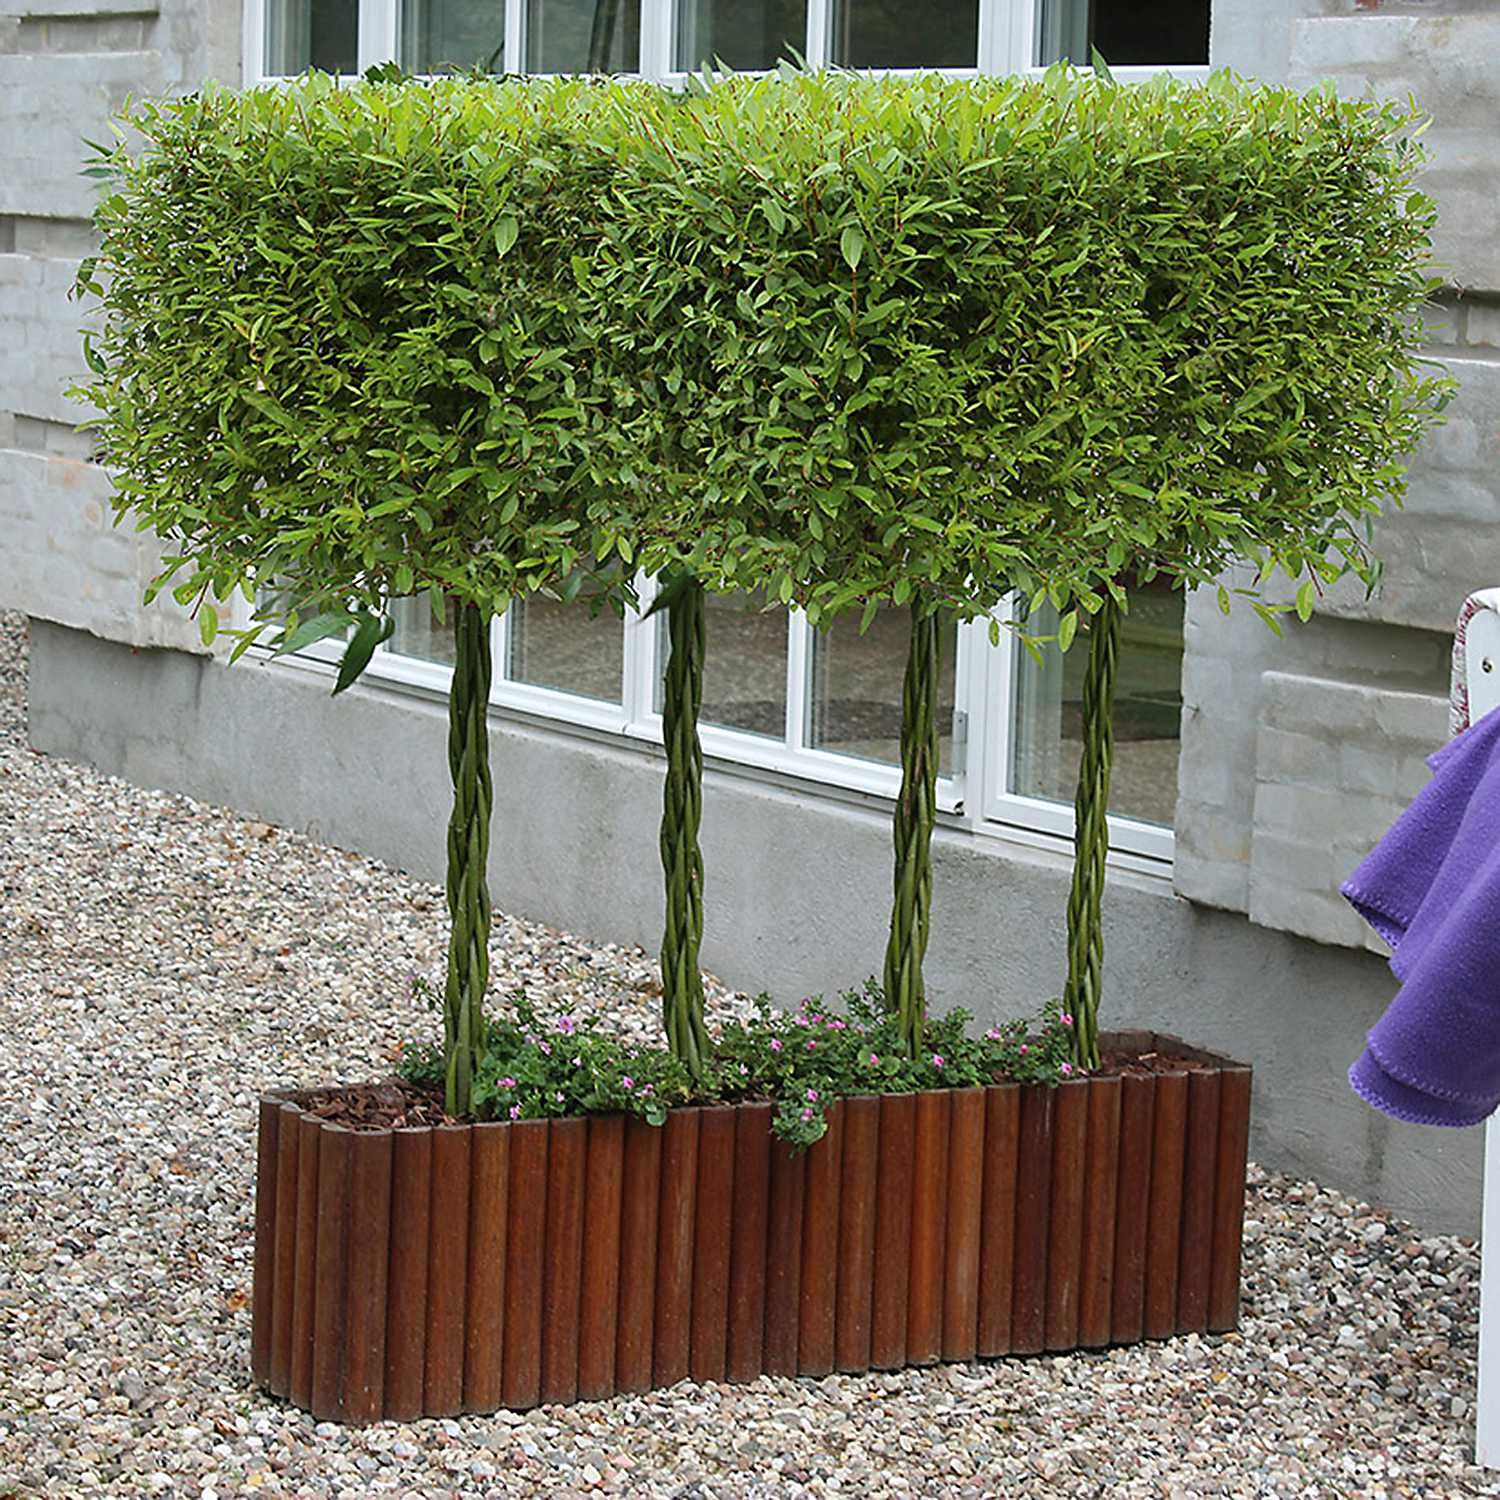 Woven Willow  Planter Baske  1m x 1m   PACK of  2 Woven Willow Raised Bed